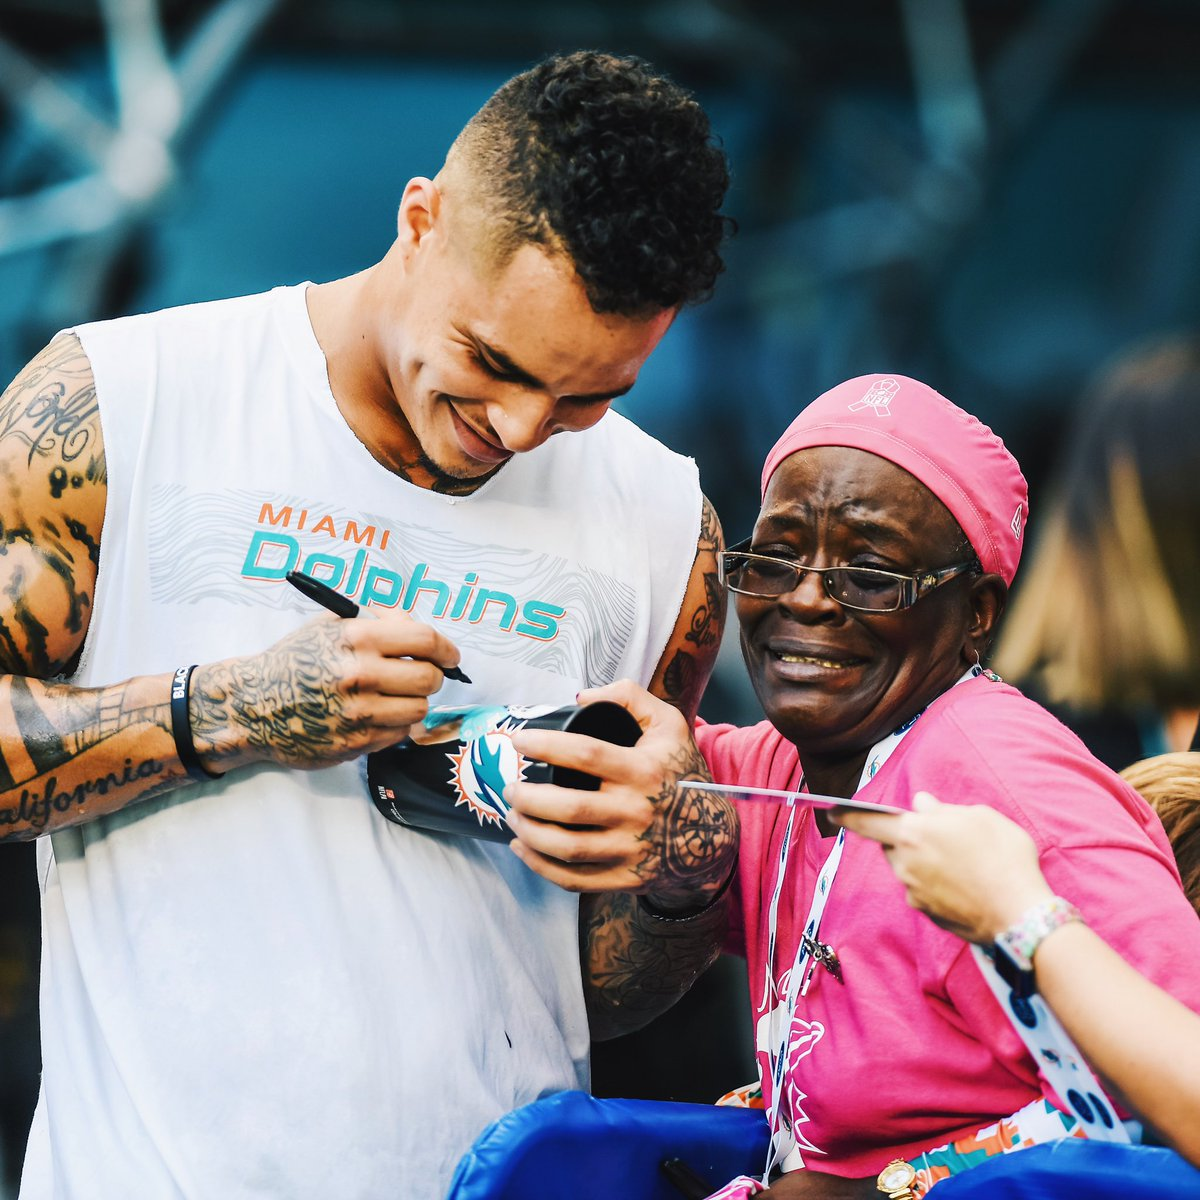 Humbled and honored to be named the Dolphins' Walter Payton Man of the Year nominee. Thankful for the support of the organization, my teammates, and everyone who helps spread messages of equality, love, and justice.   @KStills + #WPMOYCHALLENGE <br>http://pic.twitter.com/V6fQBDQVQz